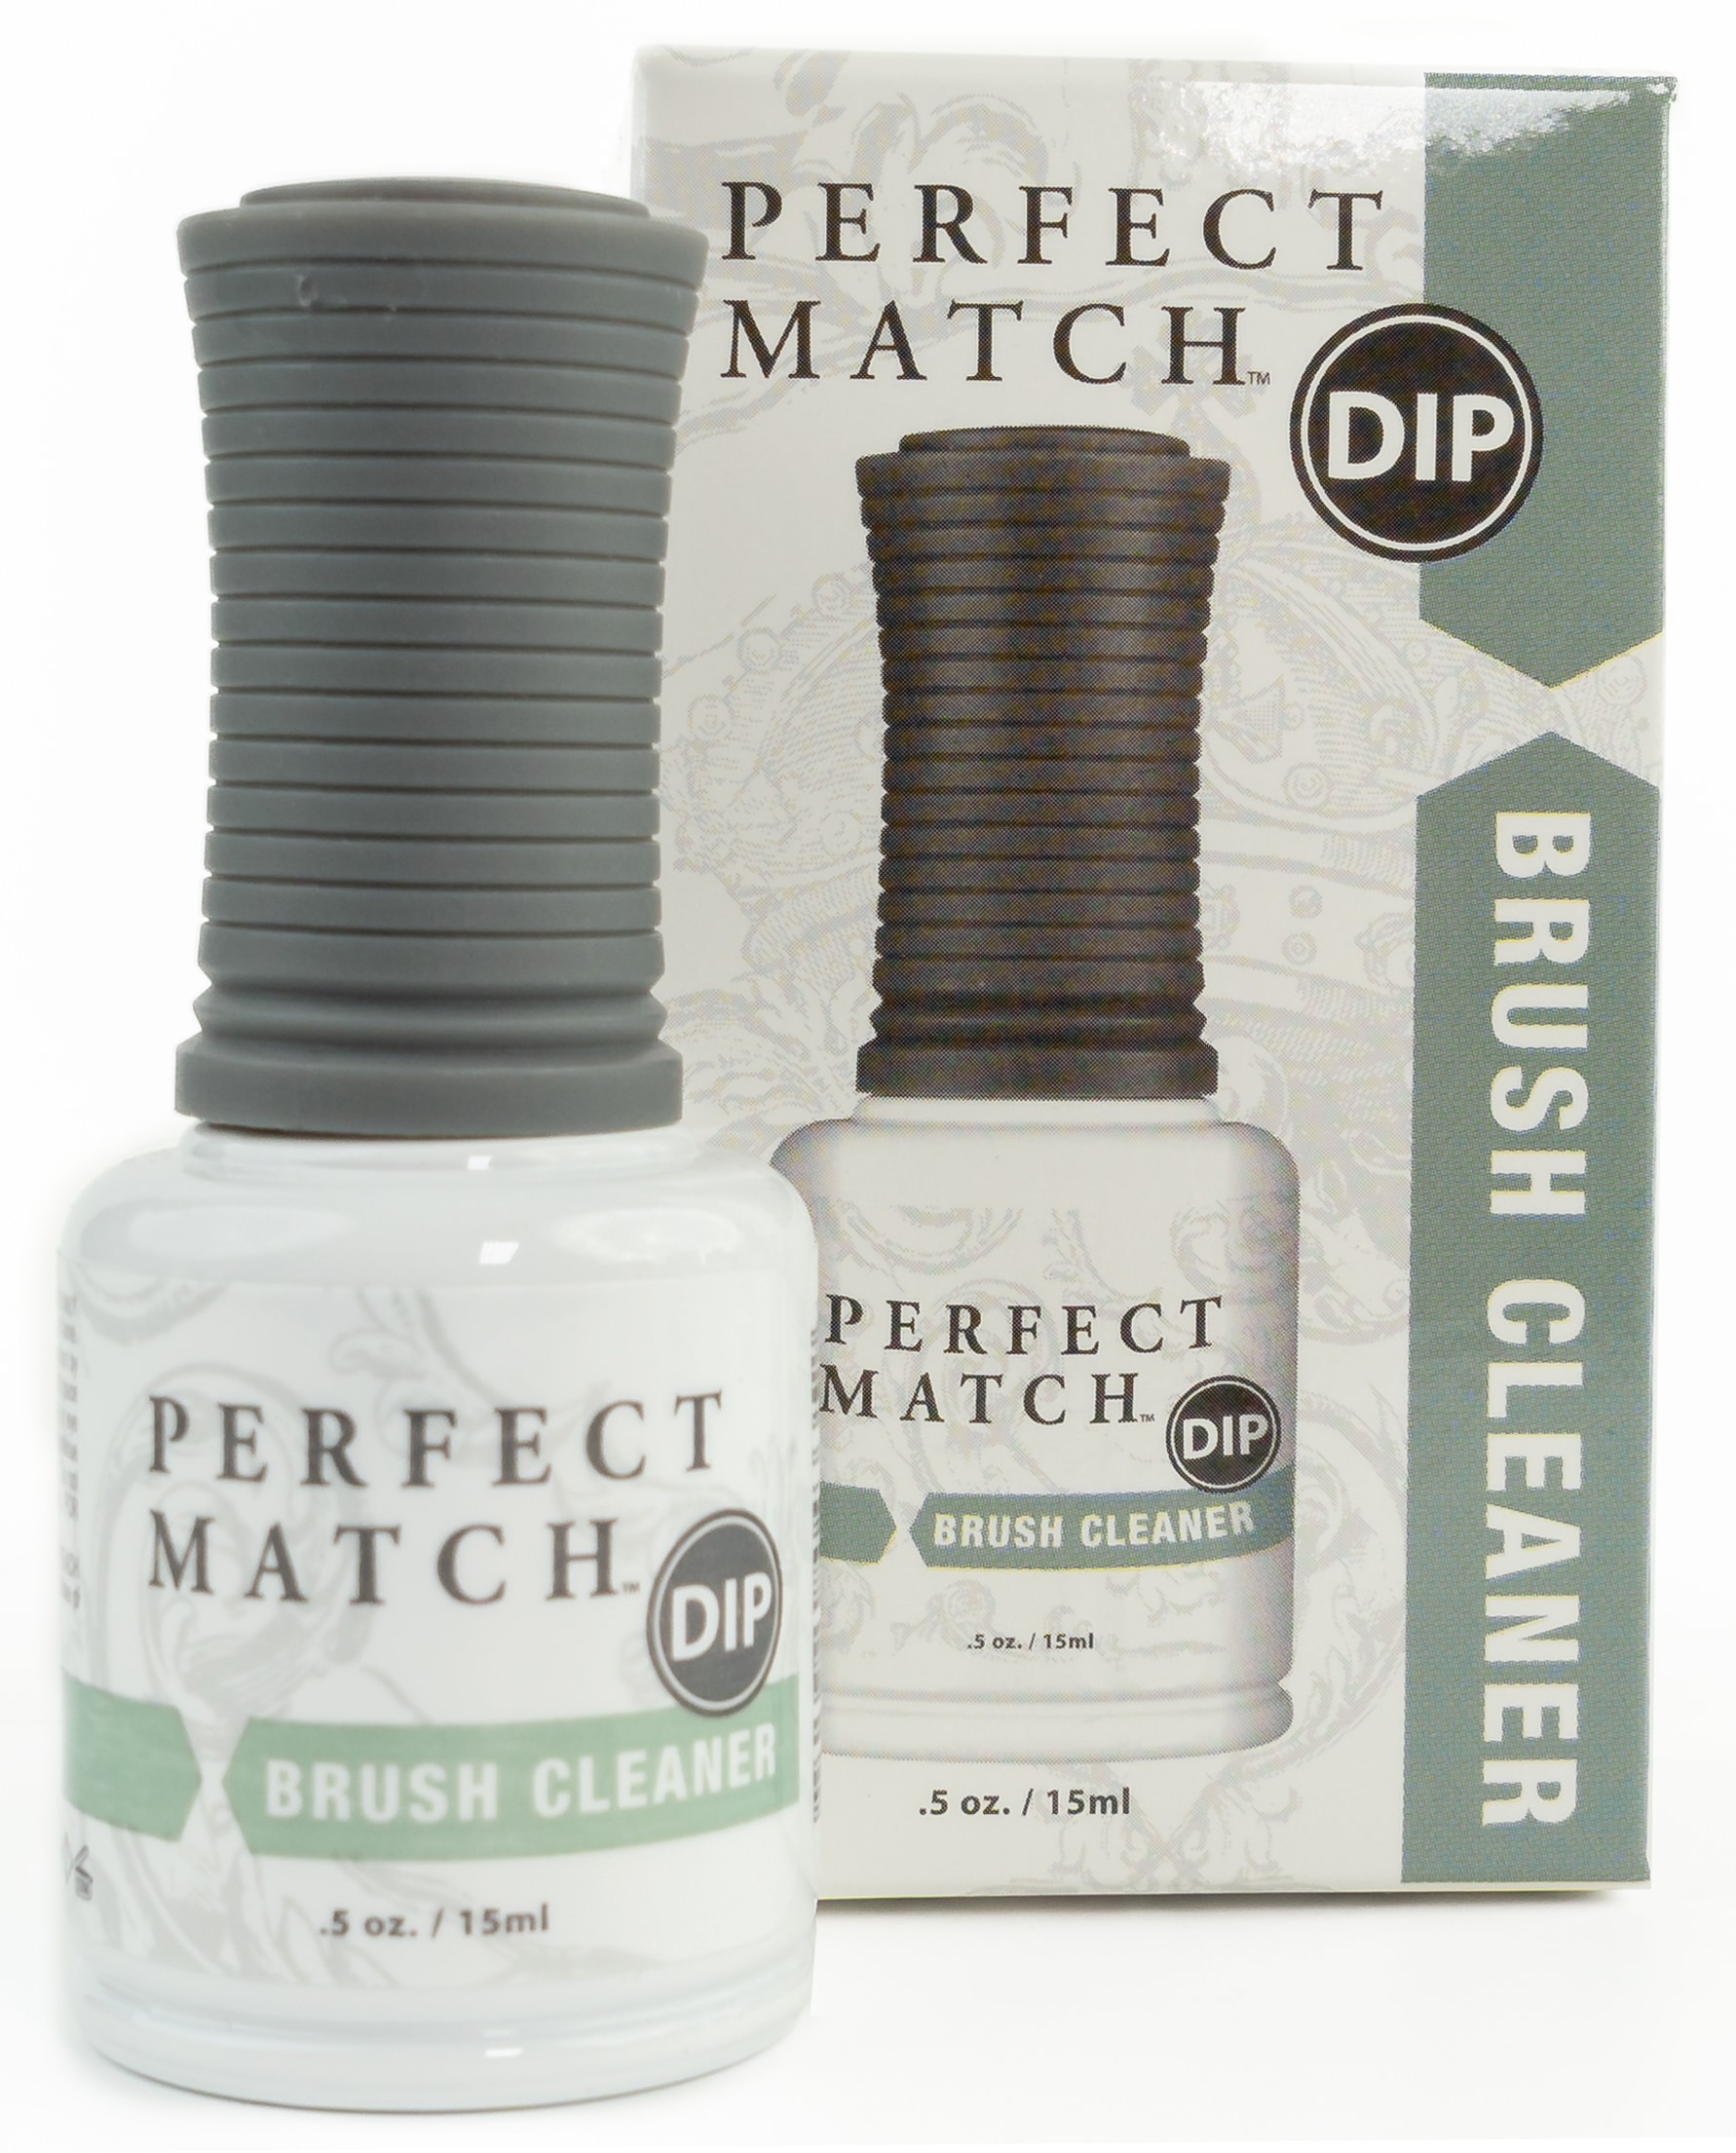 brush cleaner container and box